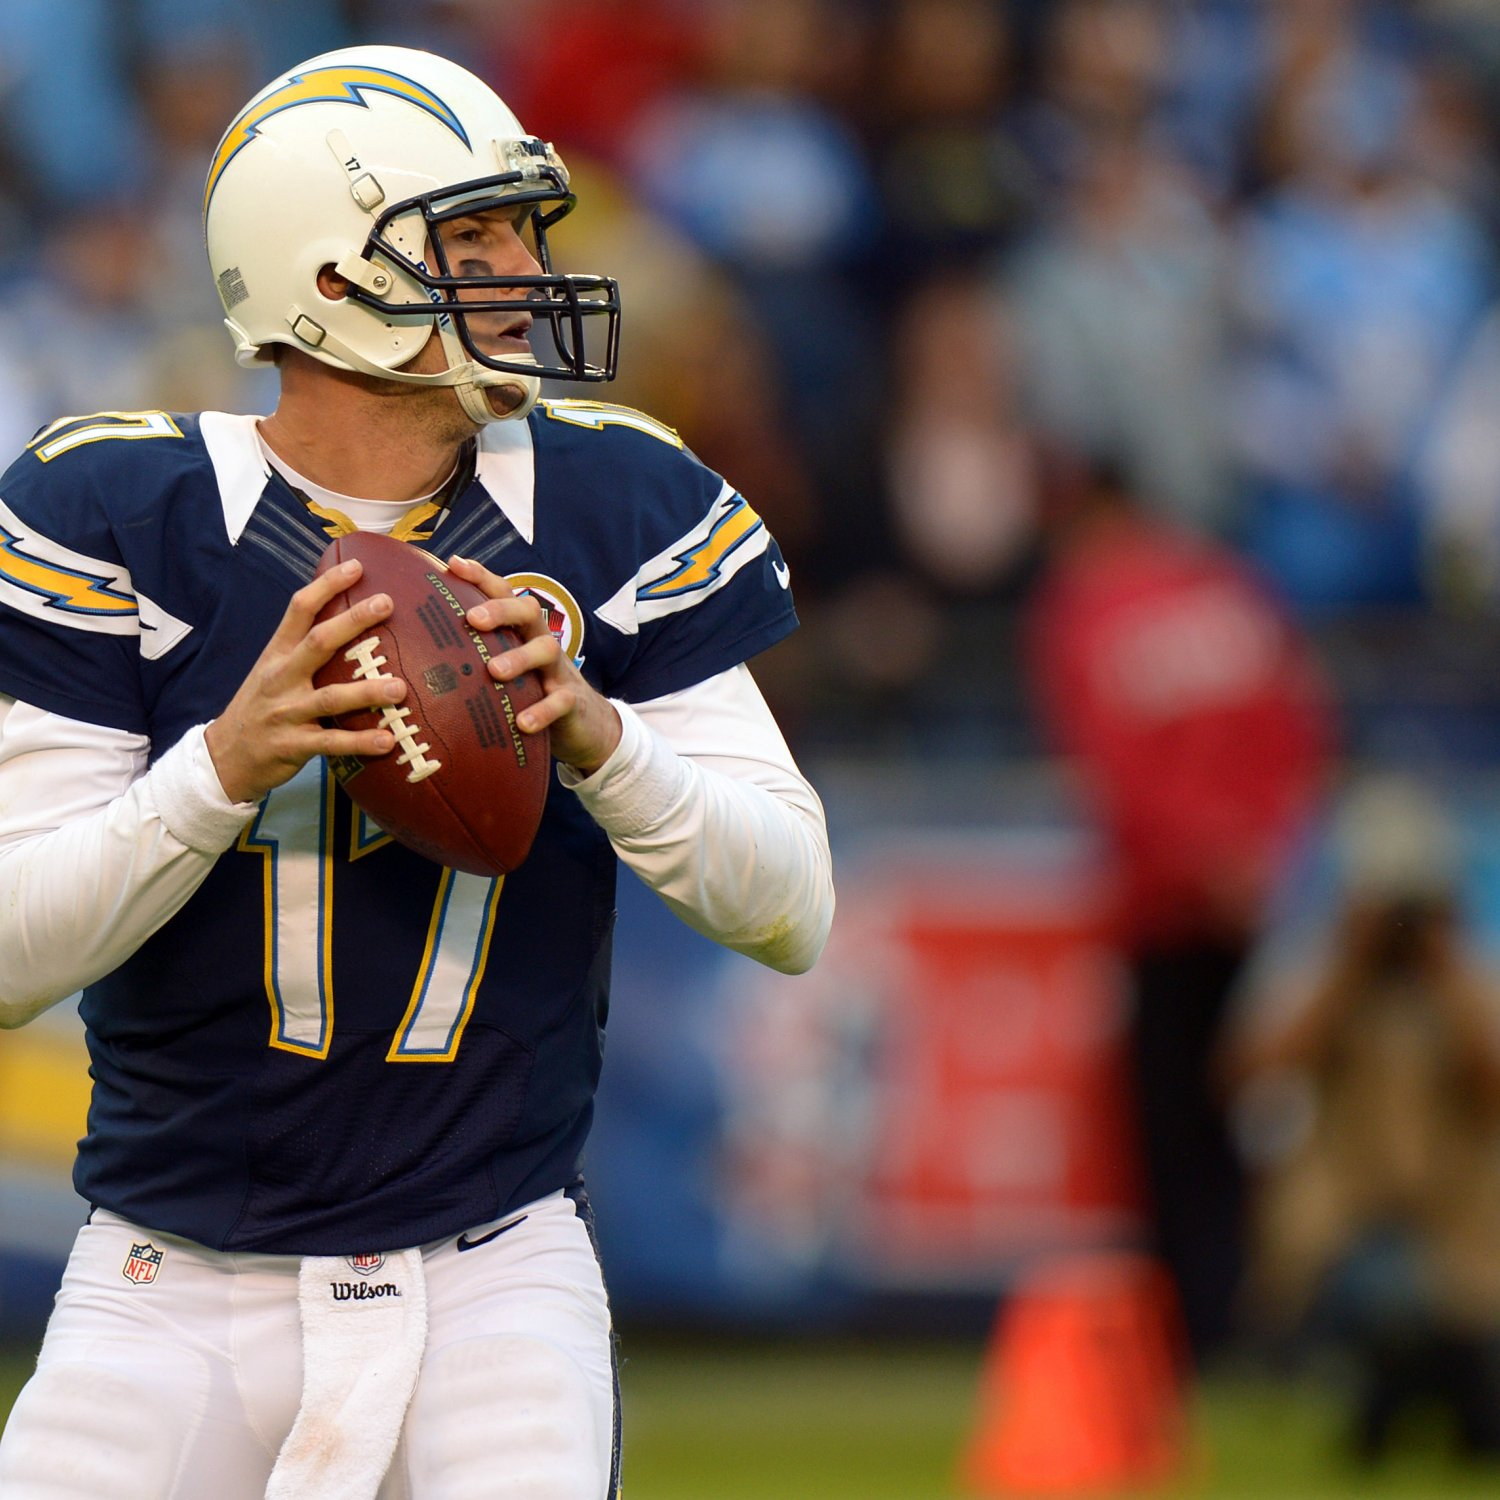 San Diego Chargers Coaches: How Much Patience Should The Chargers Have With Philip